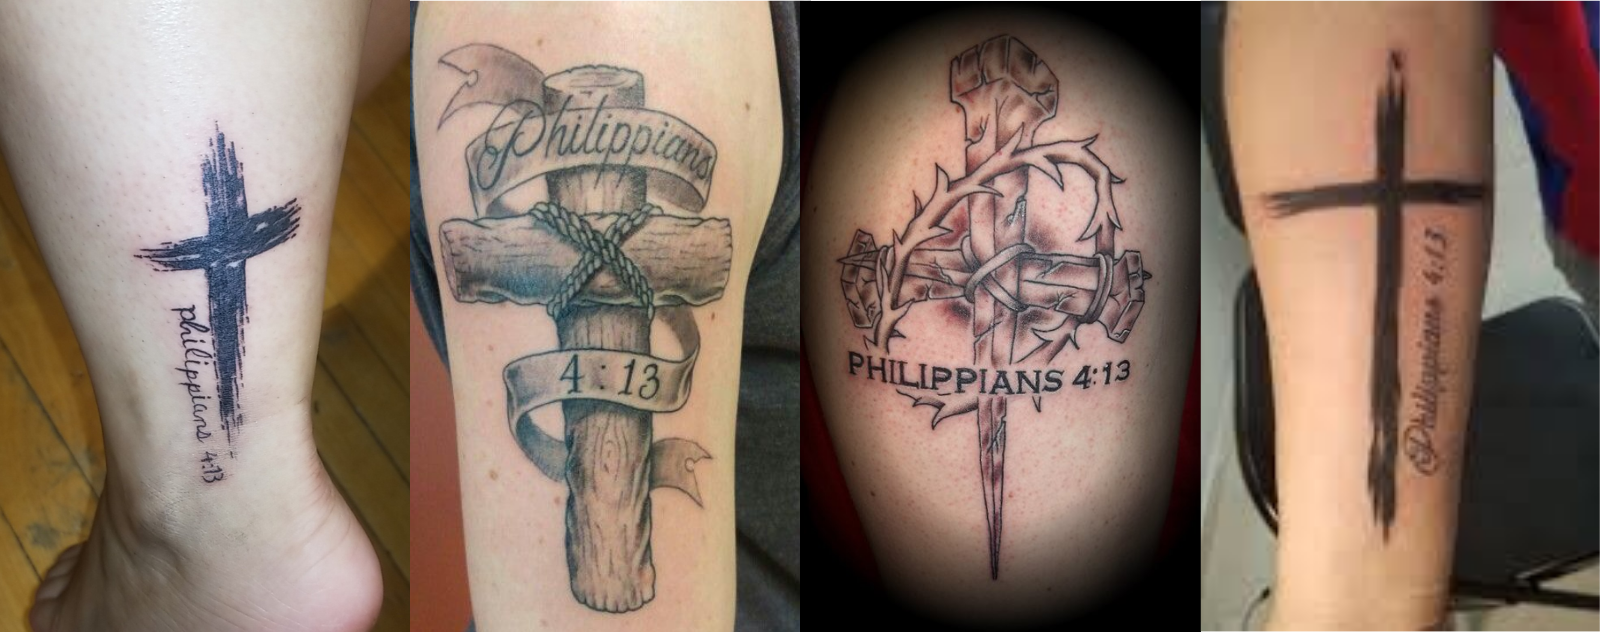 philippians-4-13-tattoo-with-cross-4